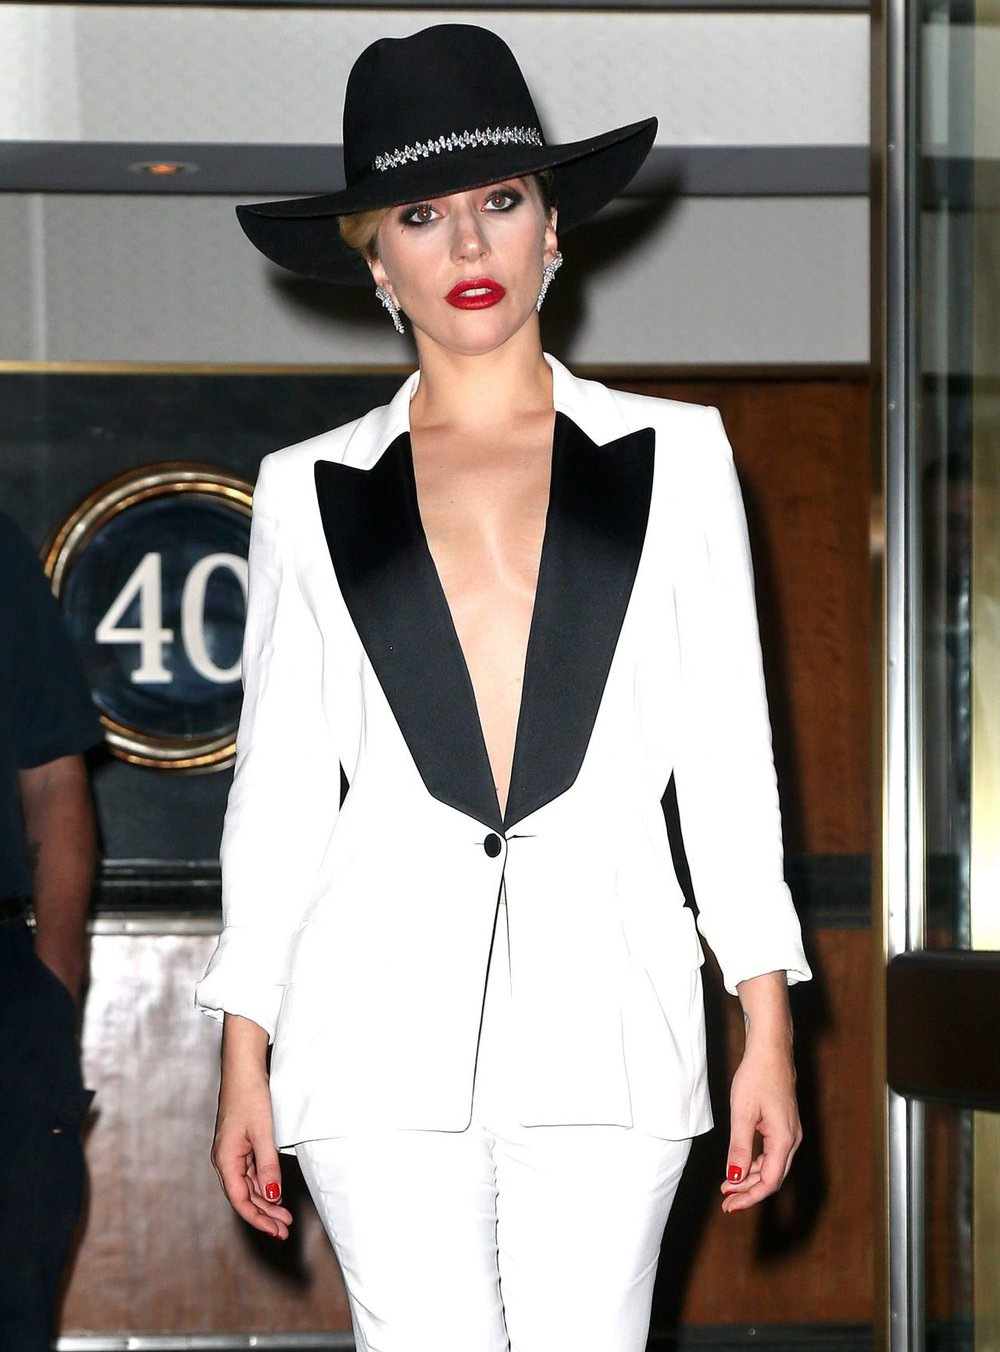 lady-gaga-classy-fashion-out-in-nyc-9-22-2016-1.jpg